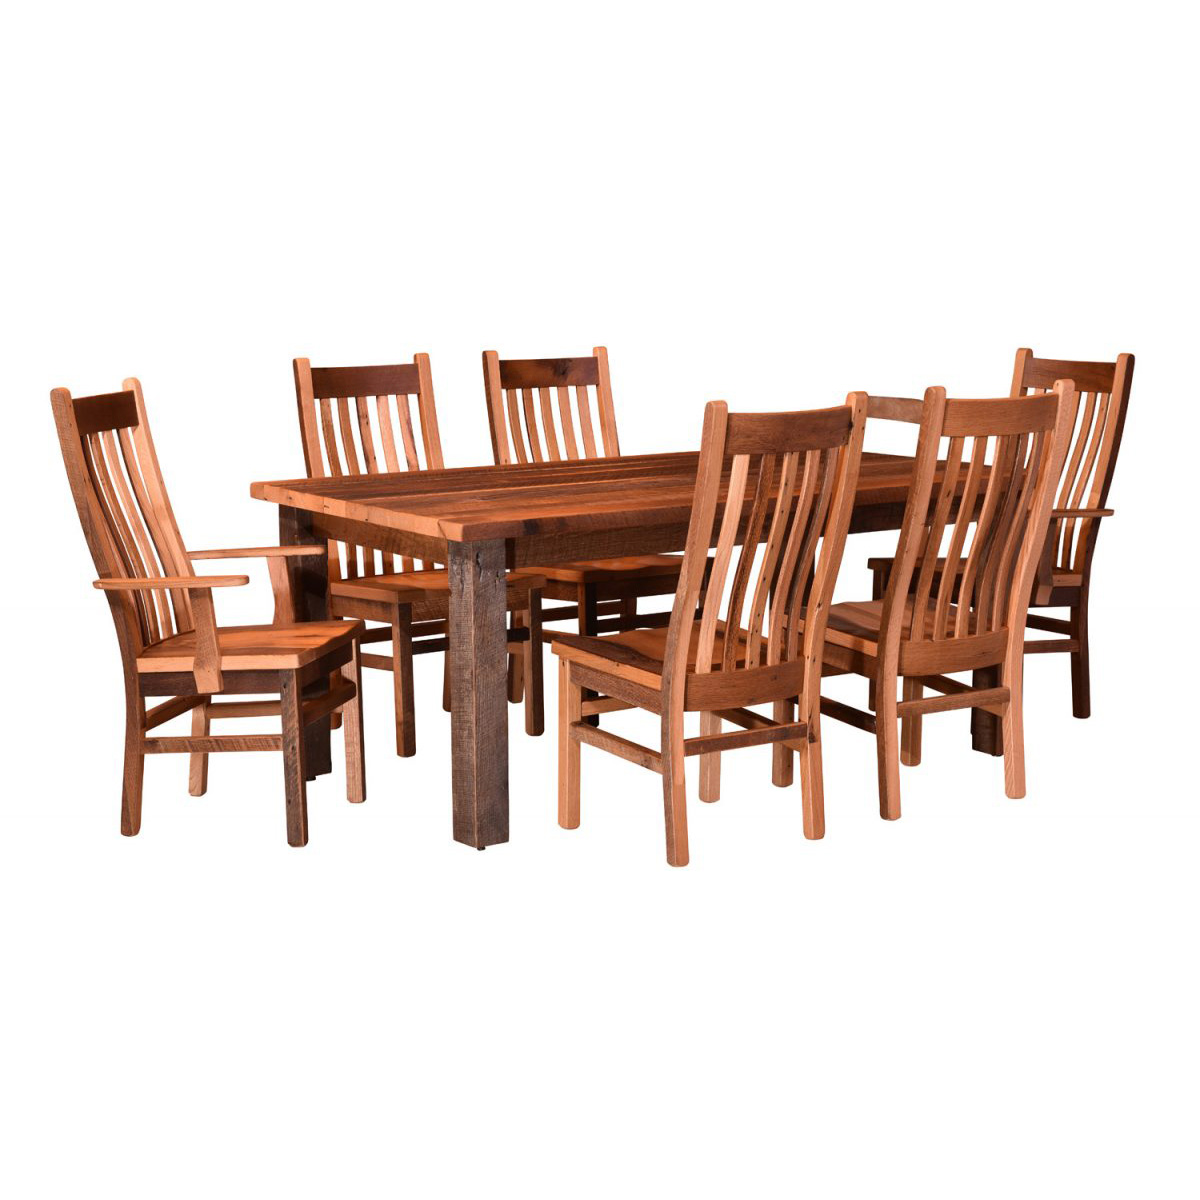 barnwood dining room chairs keller barber chair parts almanzo table square leg amish crafted